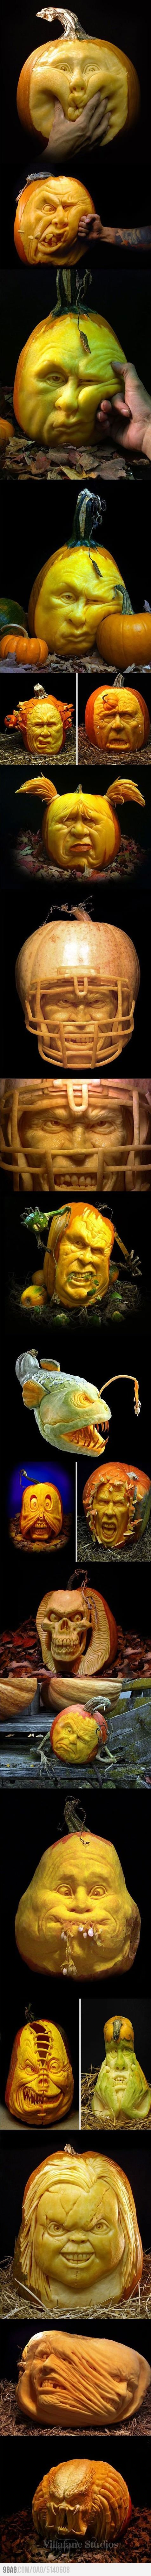 Brilliant Pumpkin Carving #diy #crafts www.BlueRainbowDesign.com